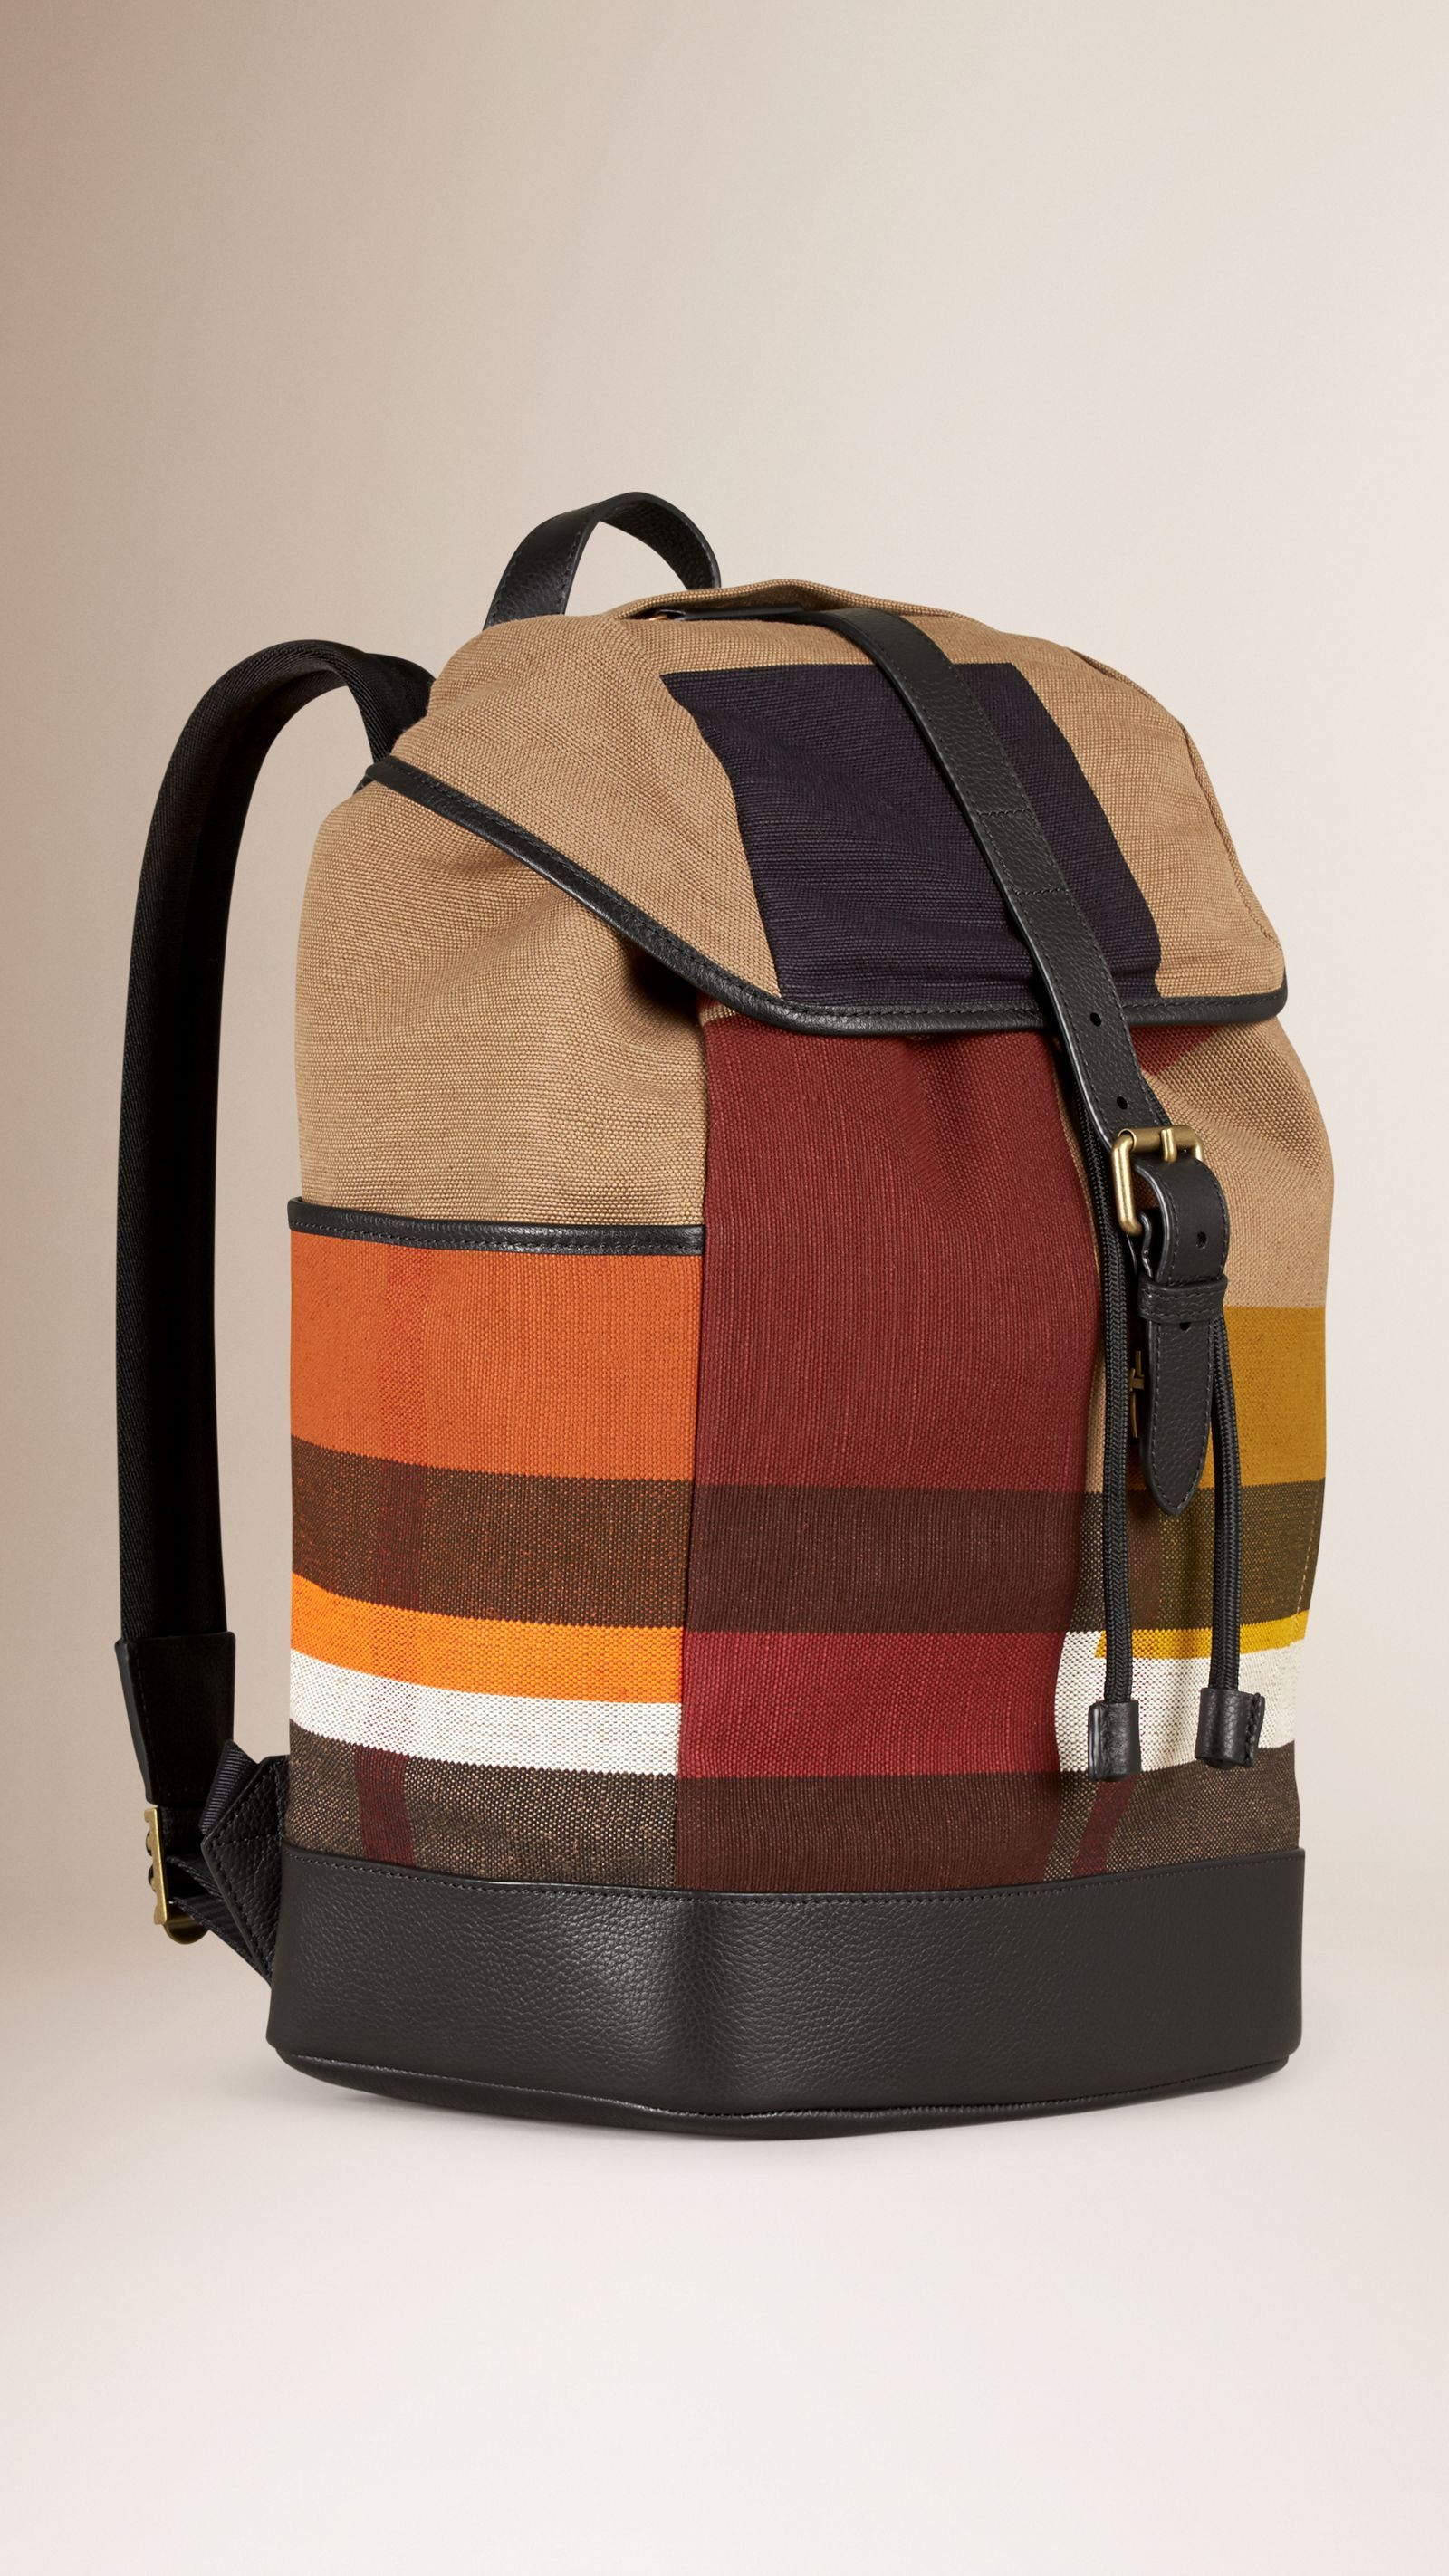 fbf09566e92f Burberry small canvas check backpack fenix toulouse handball jpg 1600x2845 Burberry  backpack purse